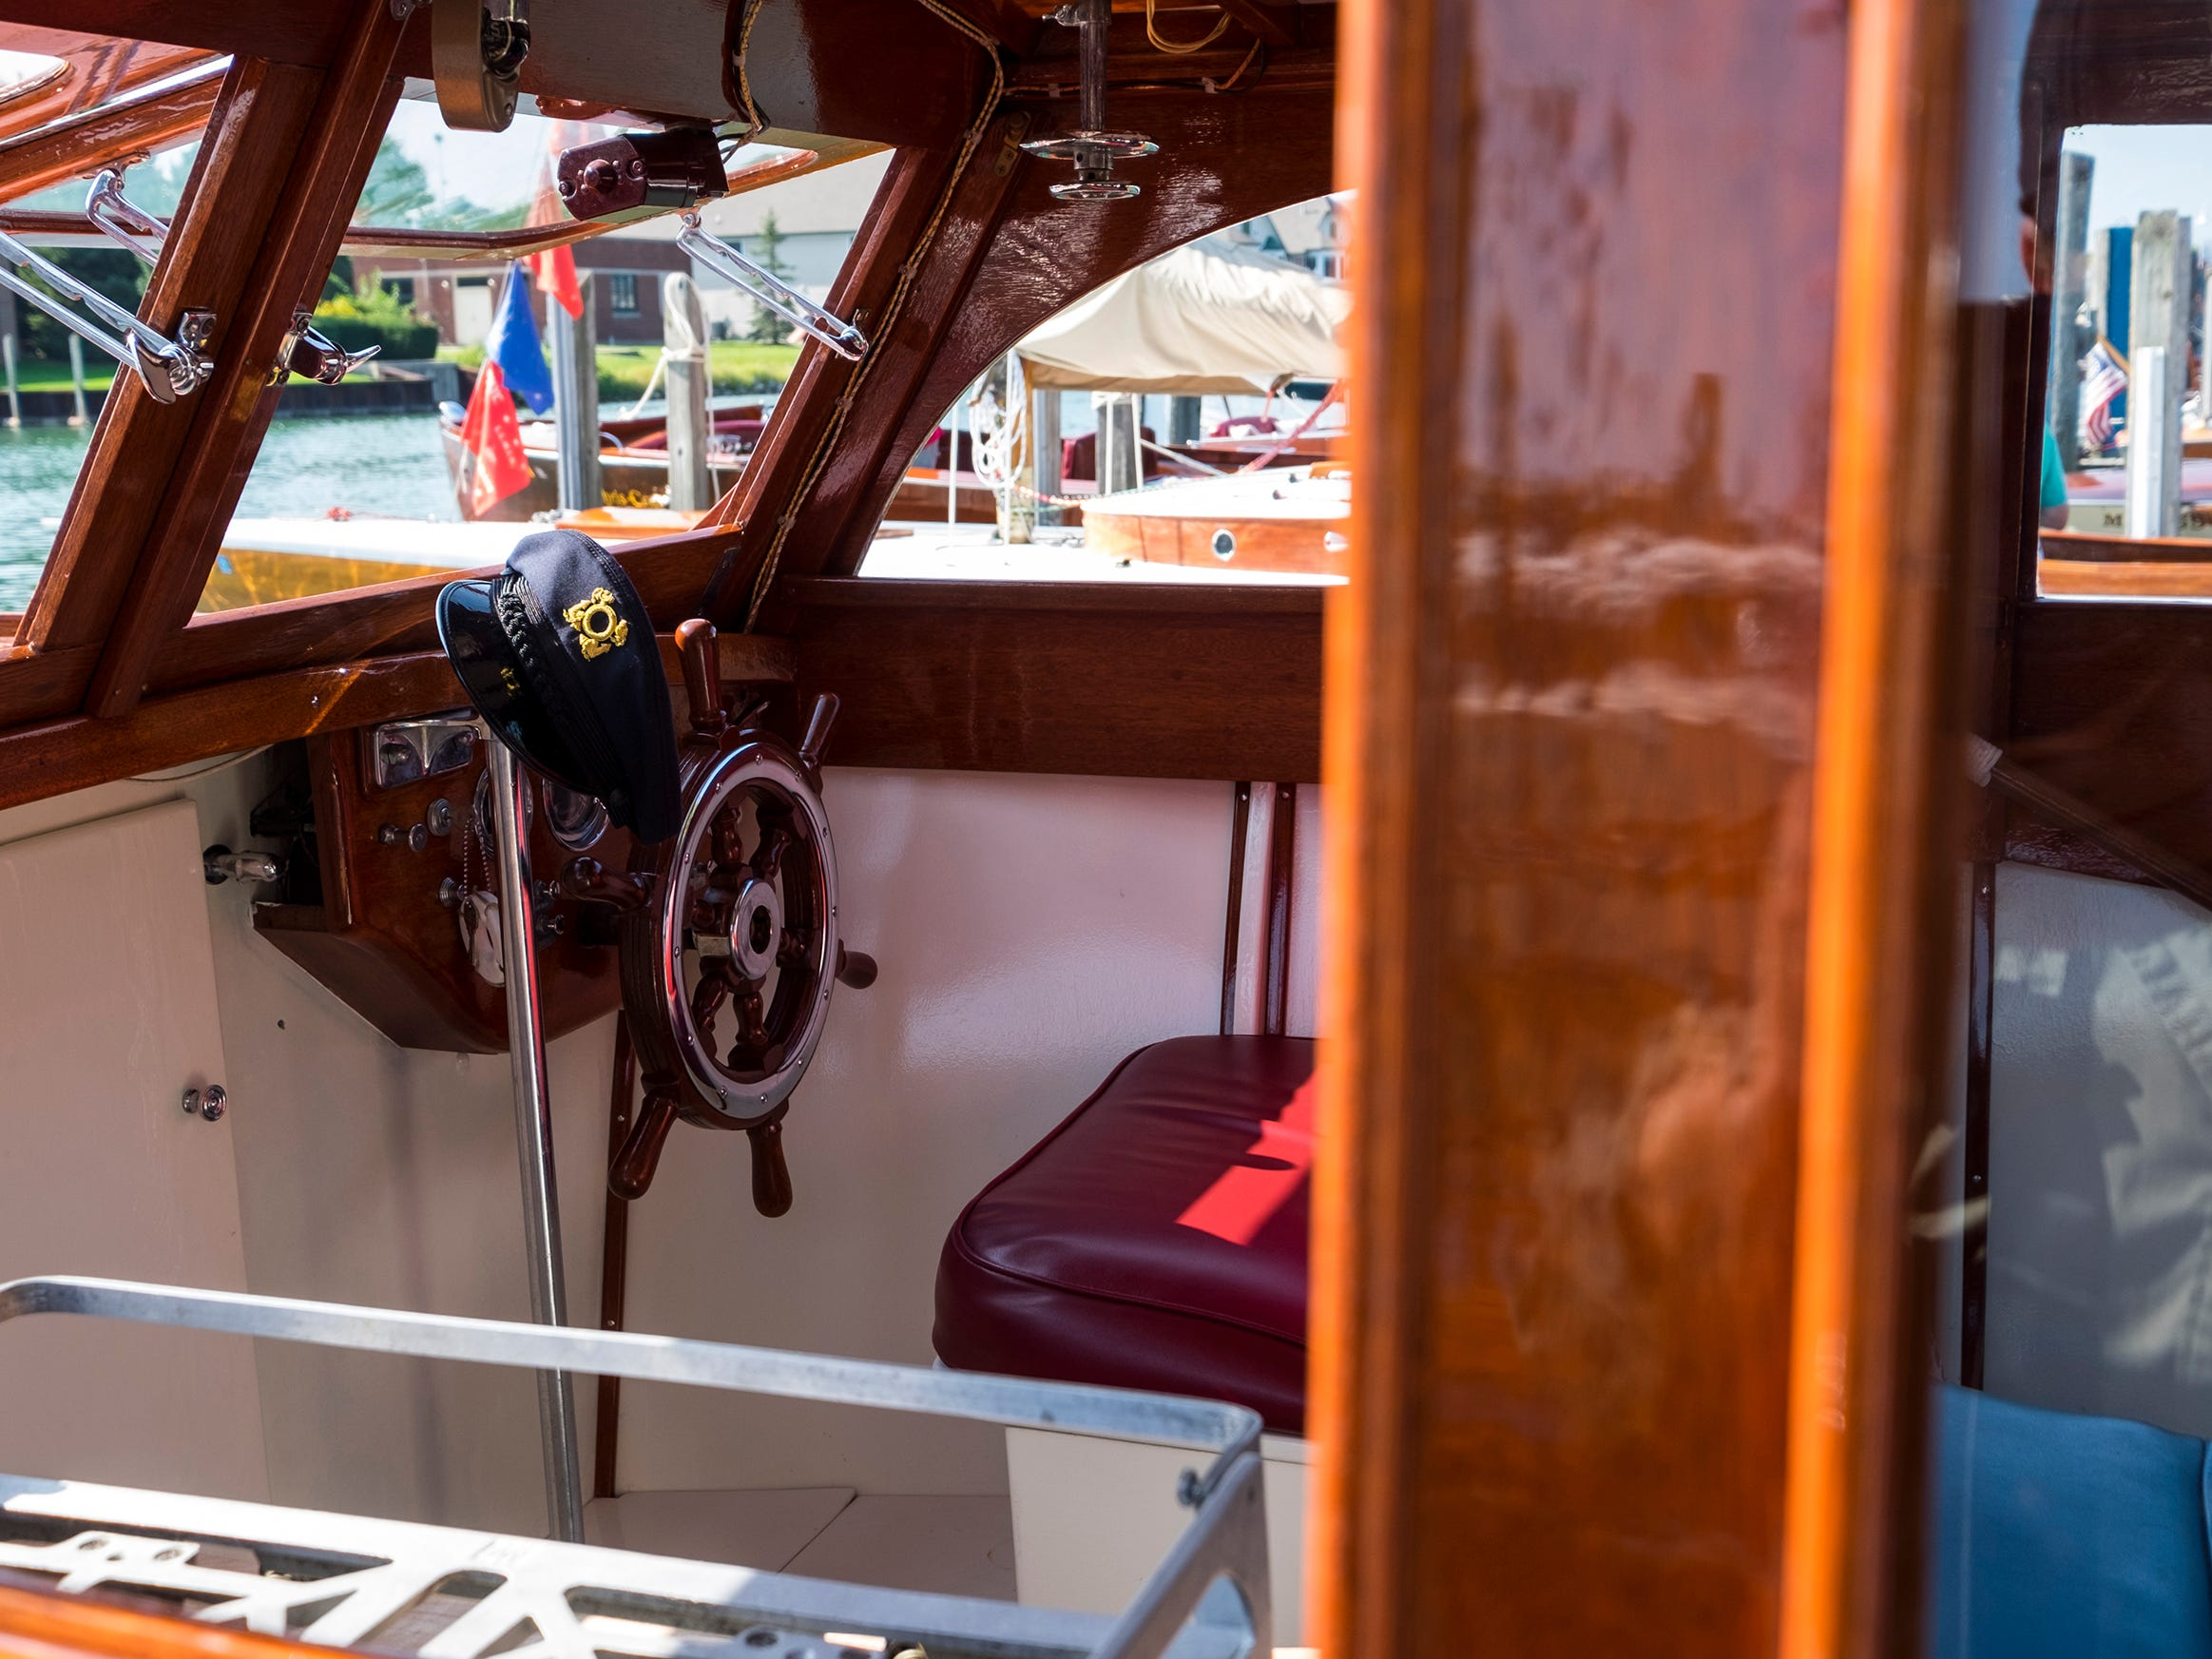 1942 Chris Craft Enclosed Cruiser 26'A 26-foot 1942 Chris Craft Enclosed Cruiser is docked at River Street Marina during the 2018 ACBS International Boat Show.